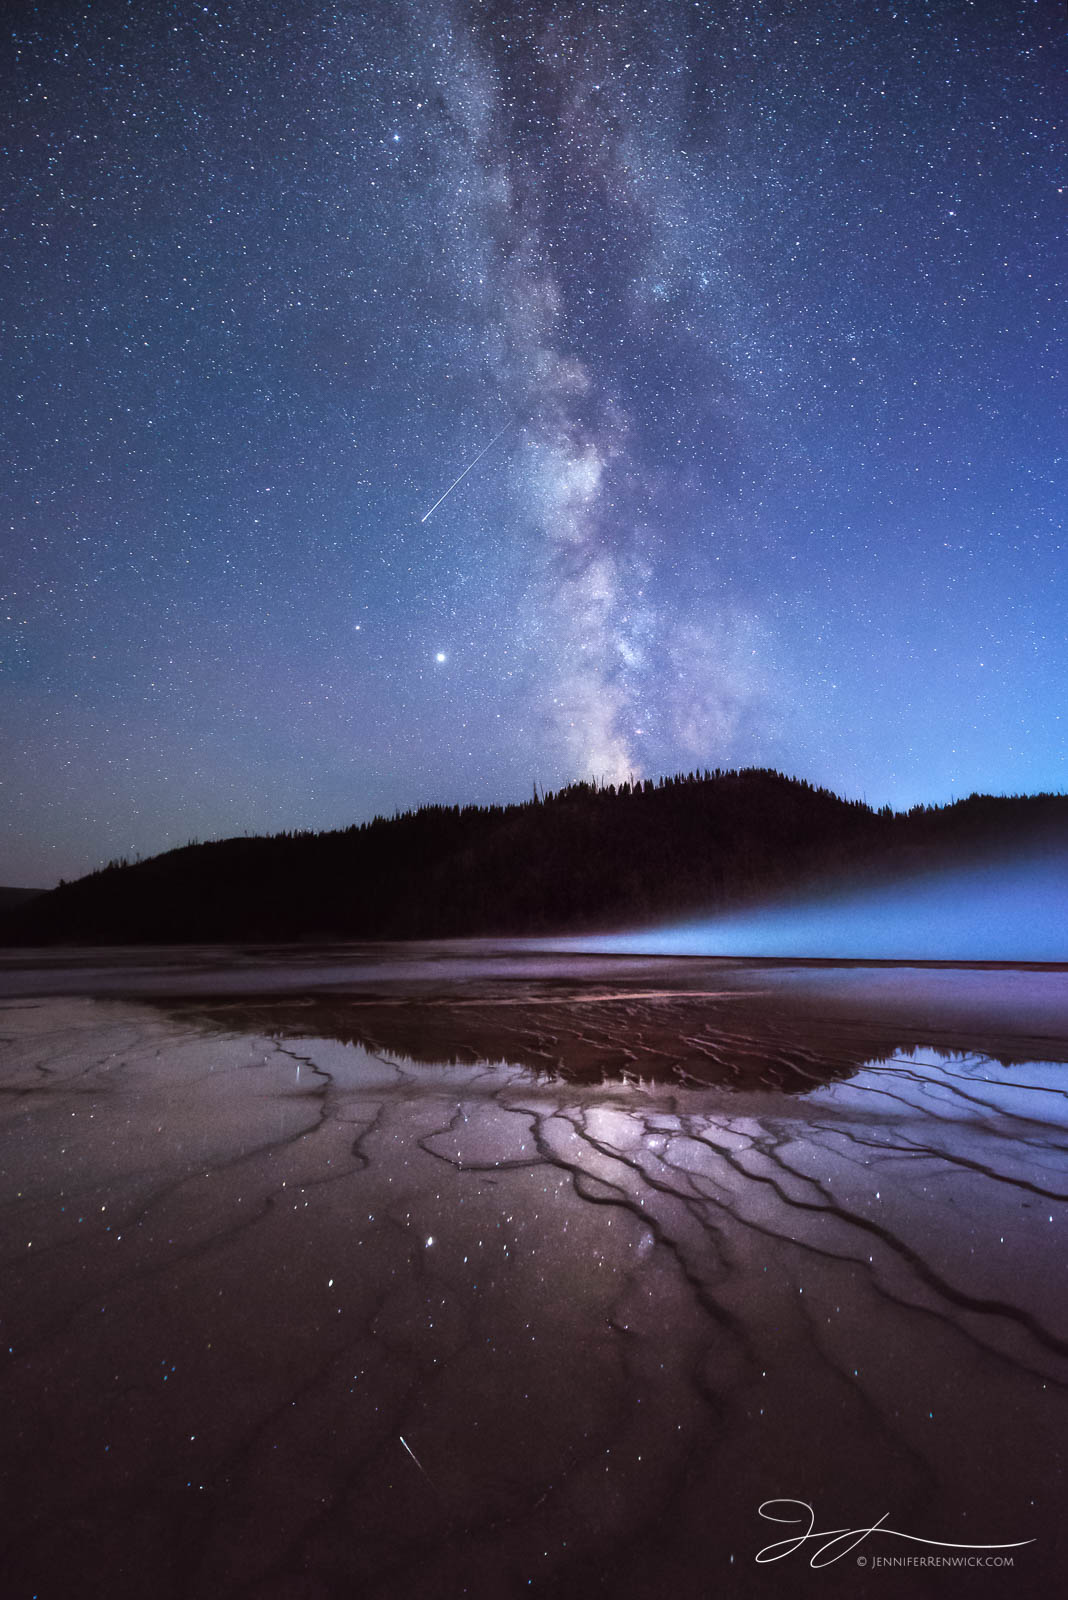 Gand Prismatic Spring, Midway Geyser Basin, Yellowstone national park, astrophotography, autumn, core, hot spring, meteor, milky way, night sky, reflection, stars, steam, terraces, wyoming, photo